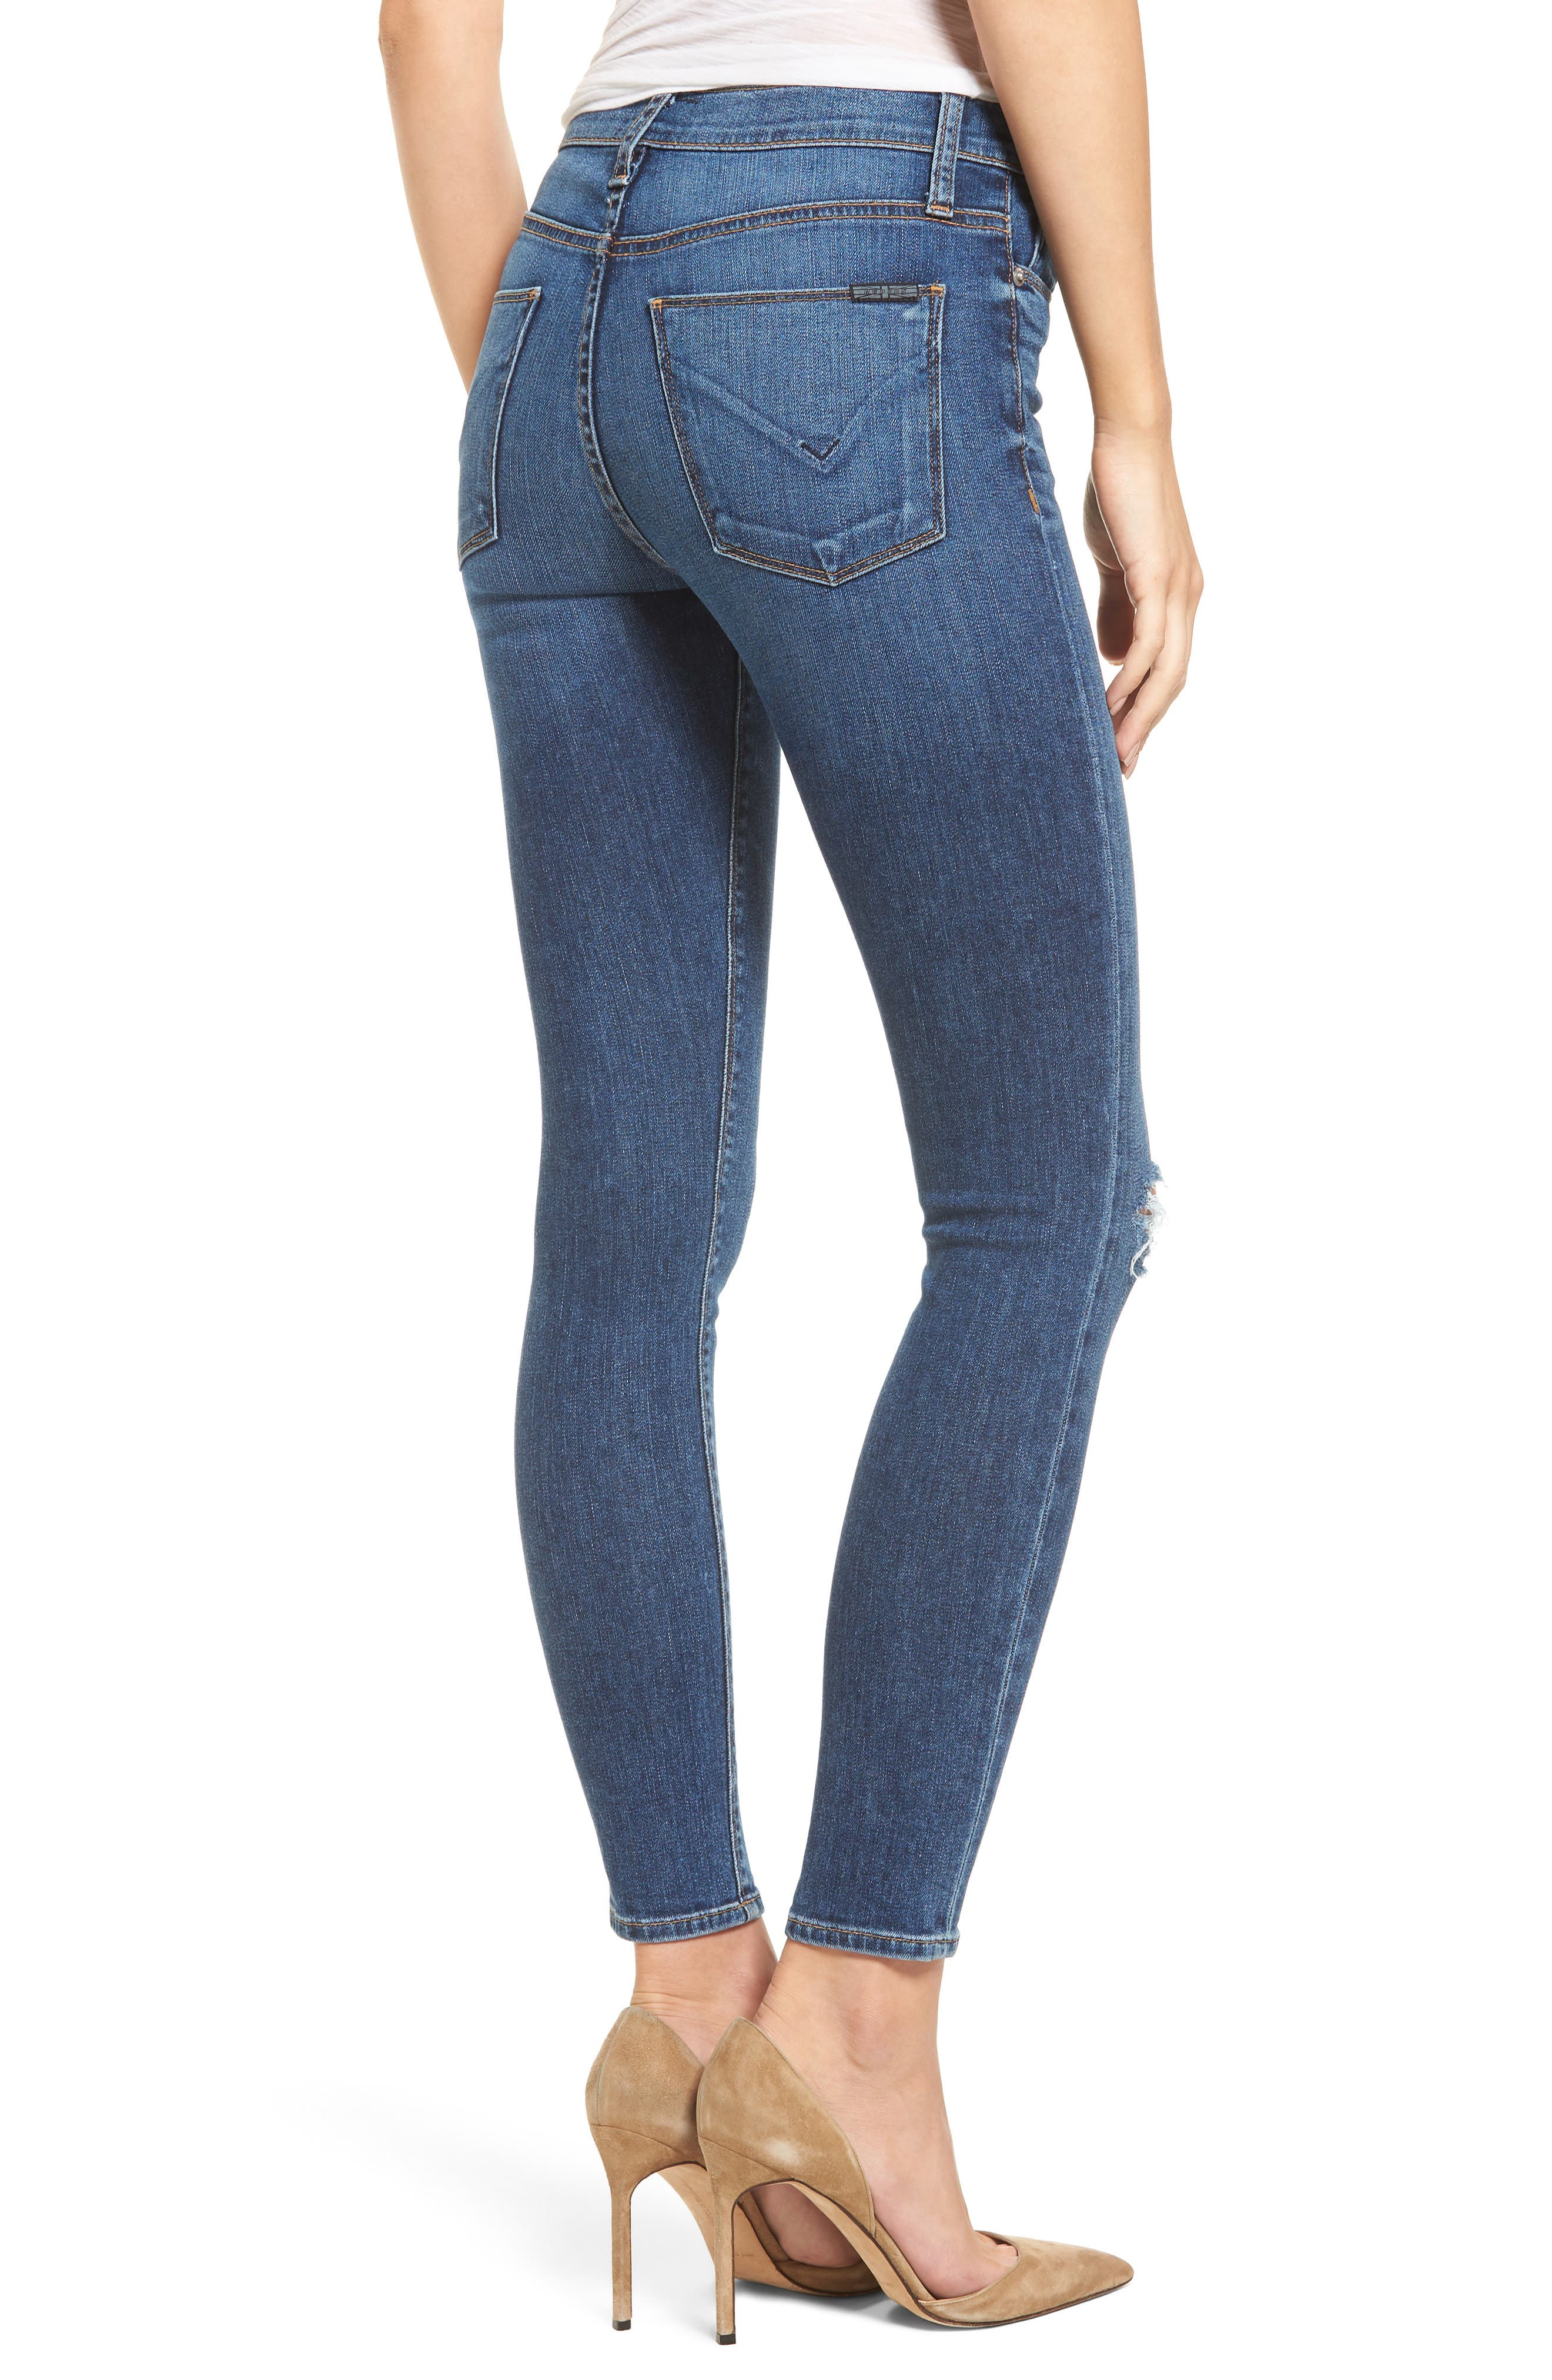 Nico Ankle Super Skinny Jeans,                             Alternate thumbnail 2, color,                             420